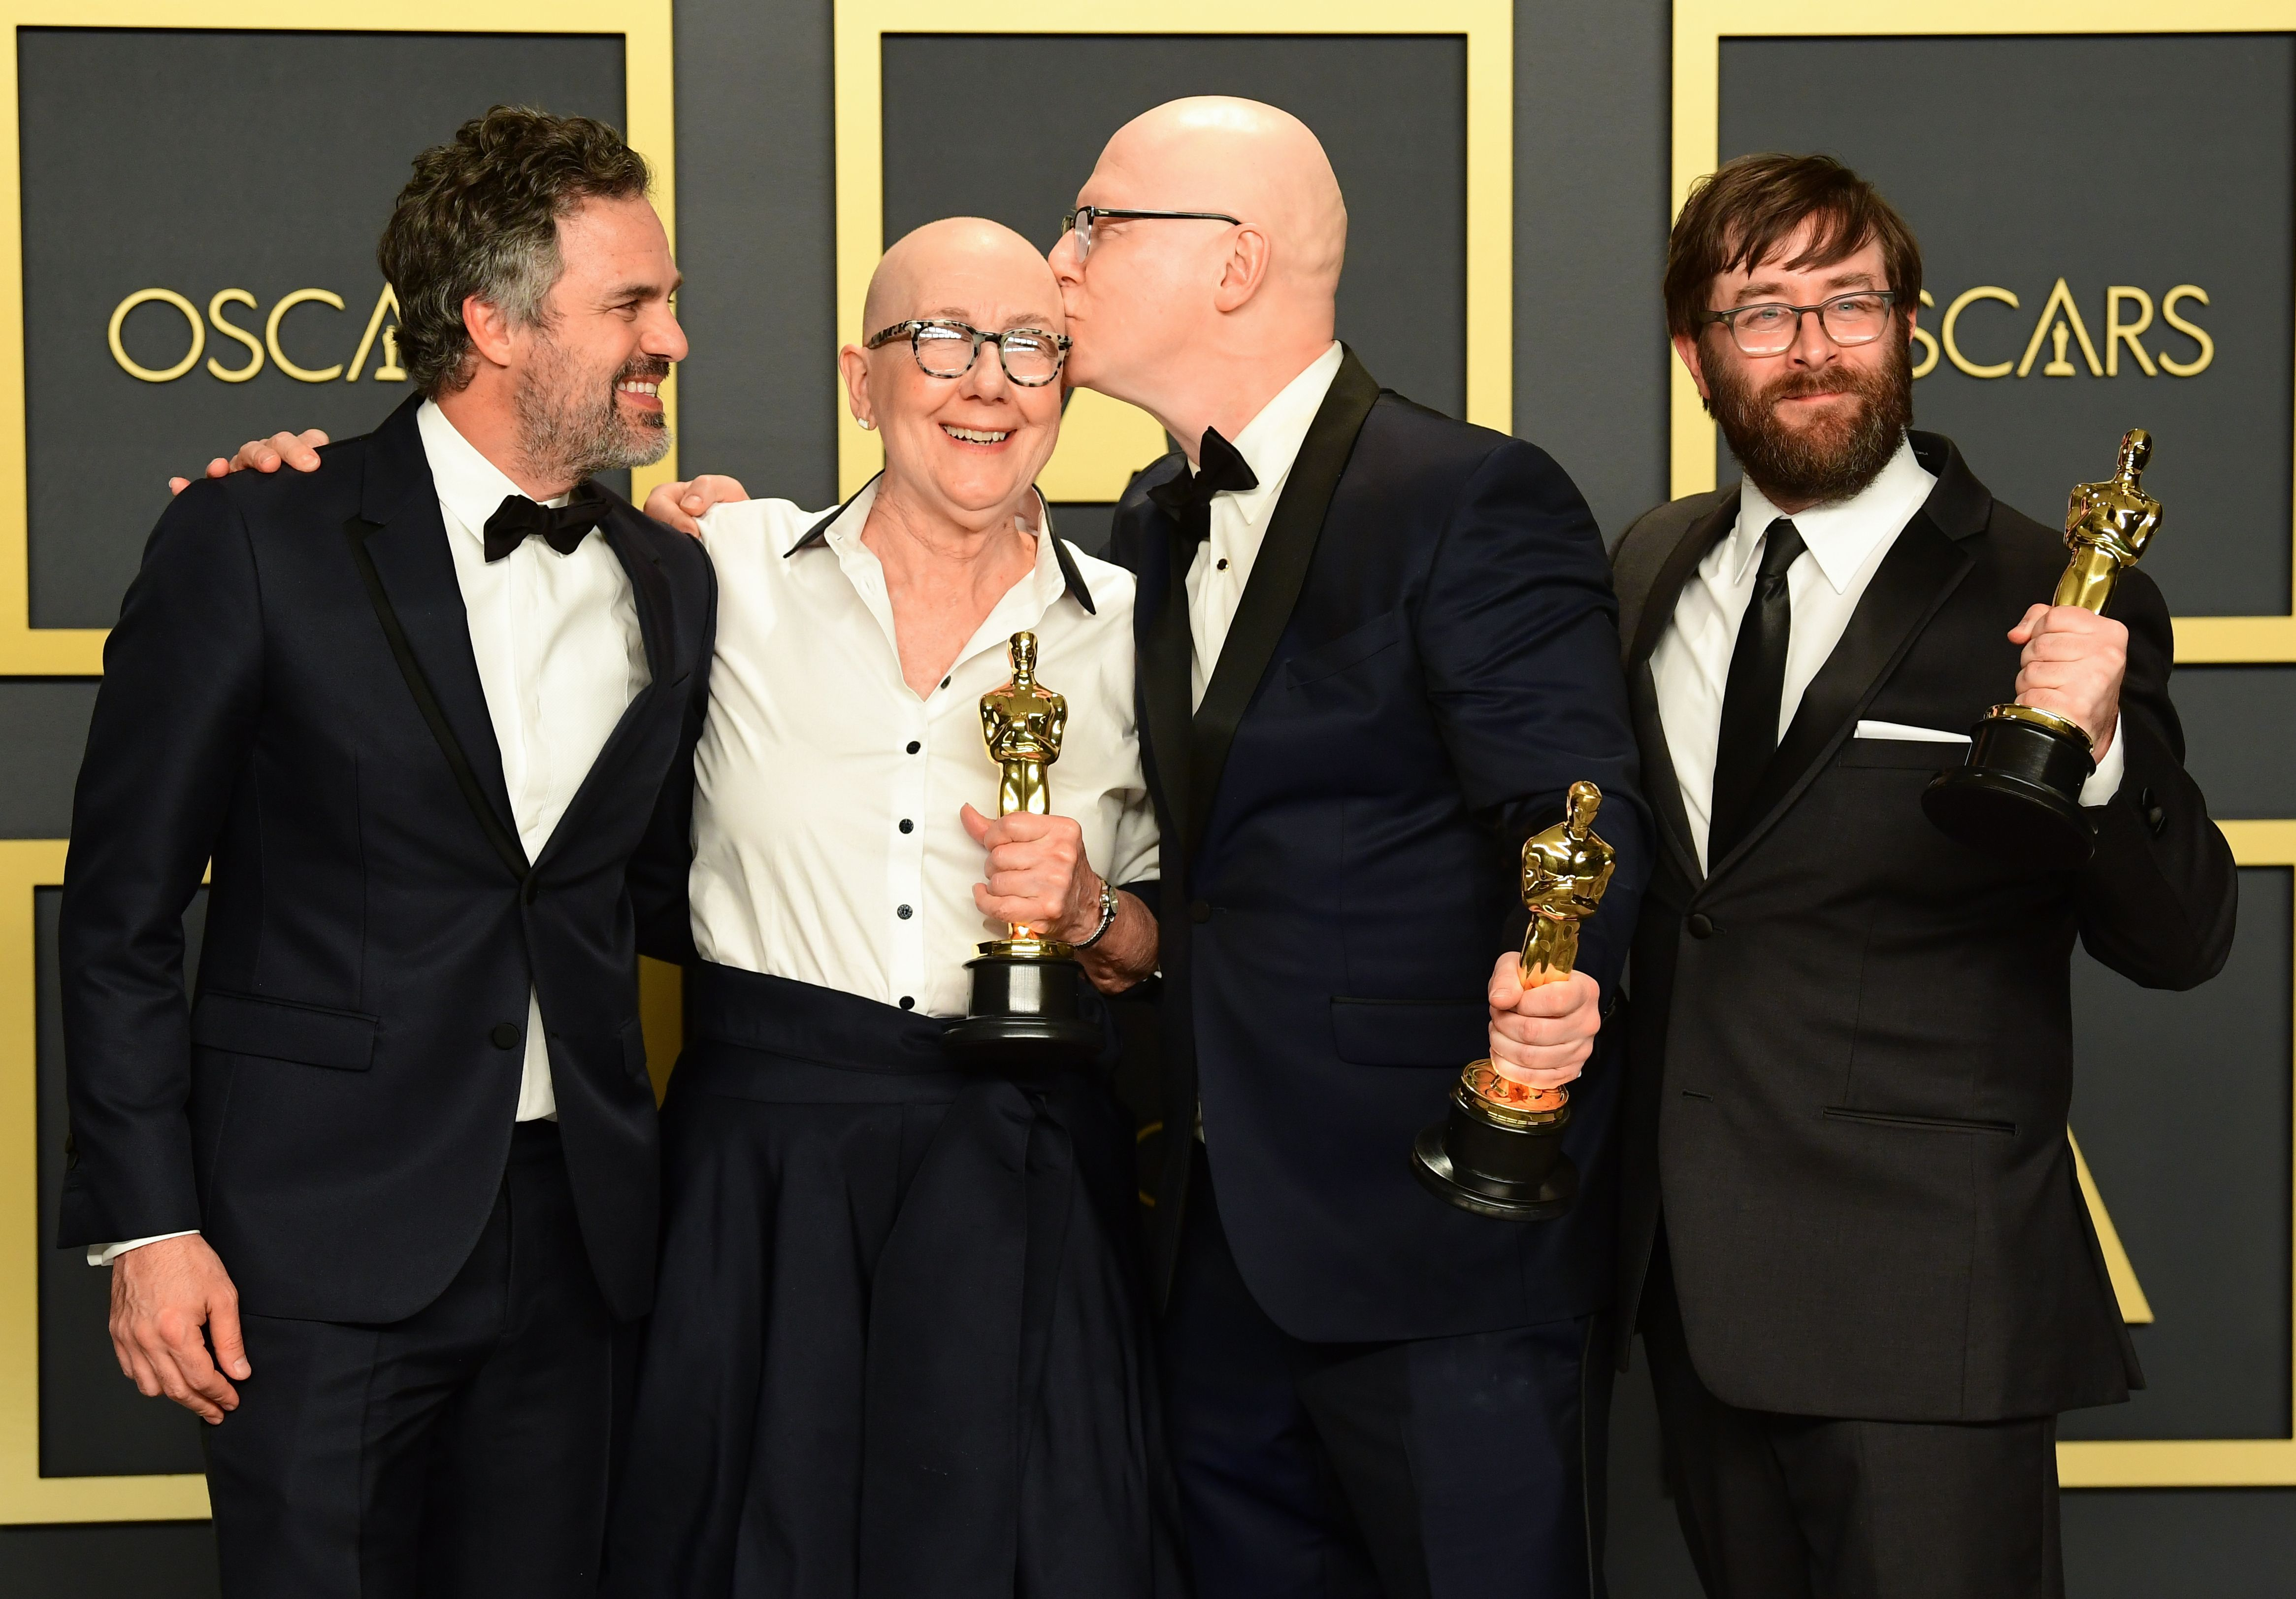 """US directors Julia Reichert, Jeff Reichert (2R) and steven Steven Bognar (R) pose in the press room with the Oscar for Best Documentary Feature for """"American Factory"""" along with US actor Mark Ruffalo (L) during the 92nd Oscars at the Dolby Theater in Hollywood, California on February 9, 2020. (Photo by FREDERIC J. BROWN / AFP) (Photo by FREDERIC J. BROWN/AFP via Getty Images)"""